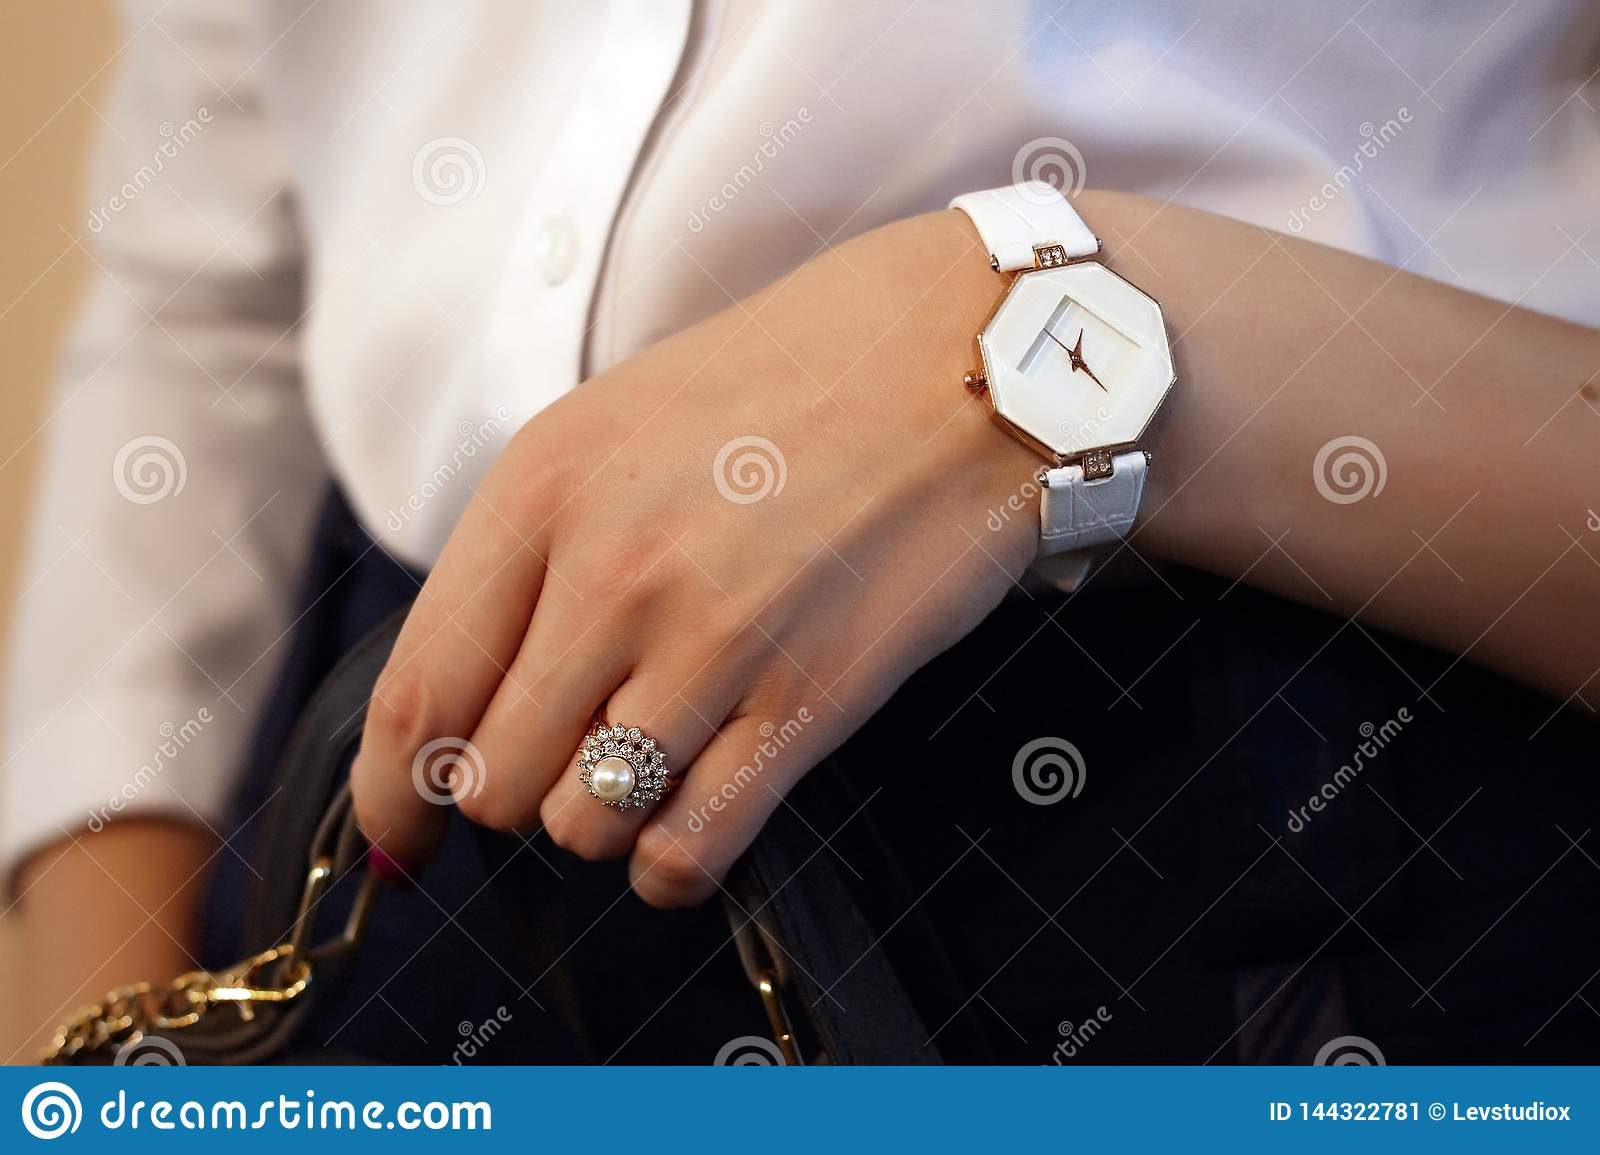 A ring with stones and a watch on the hand of a girl